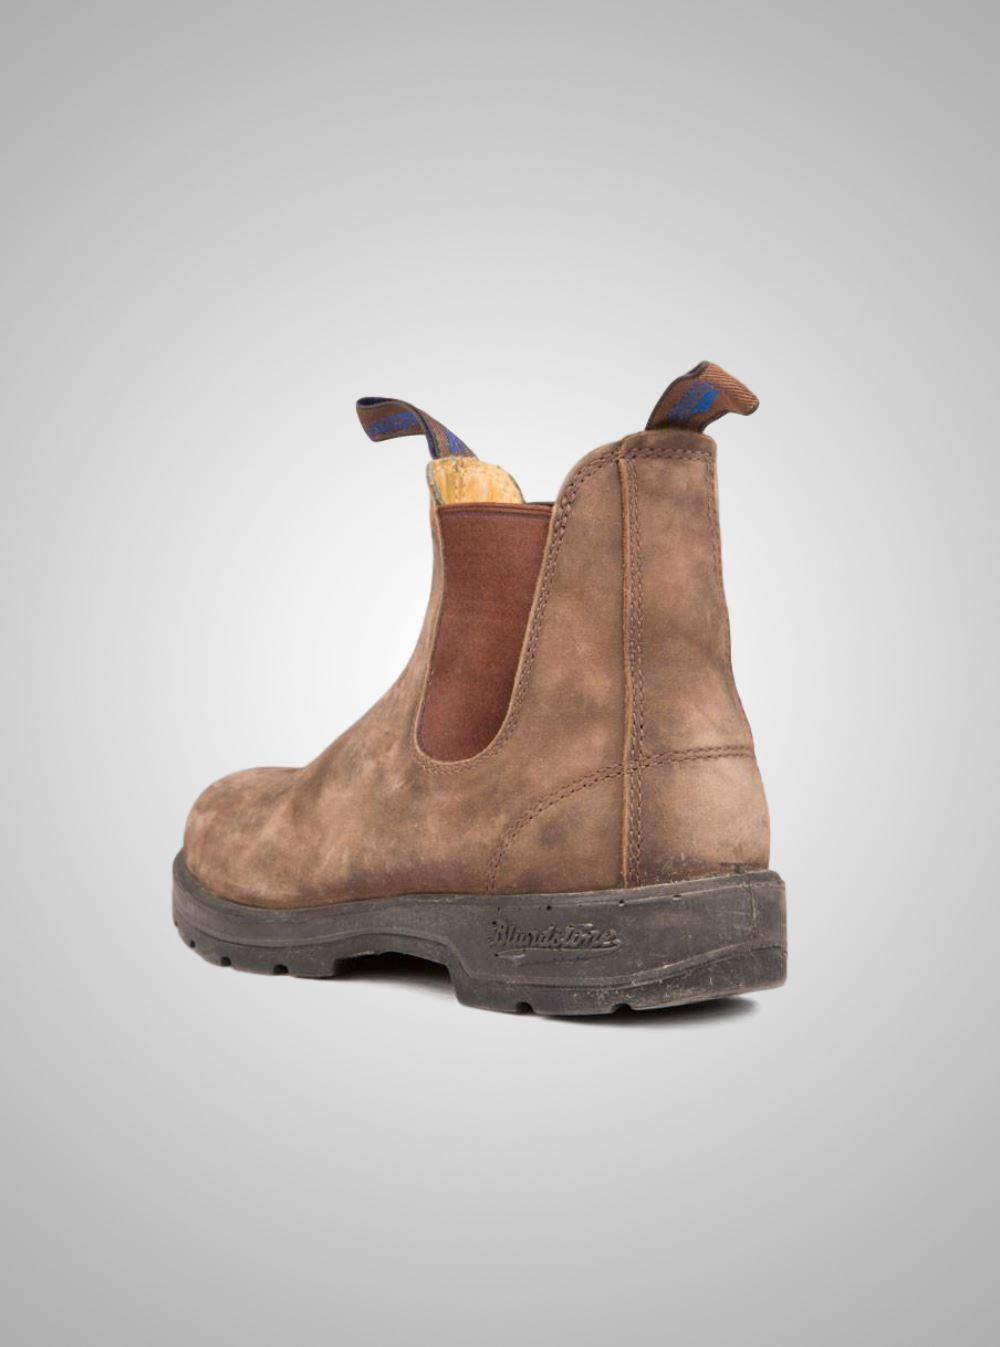 Blundstone 584 - The Winter in Rustic Brown